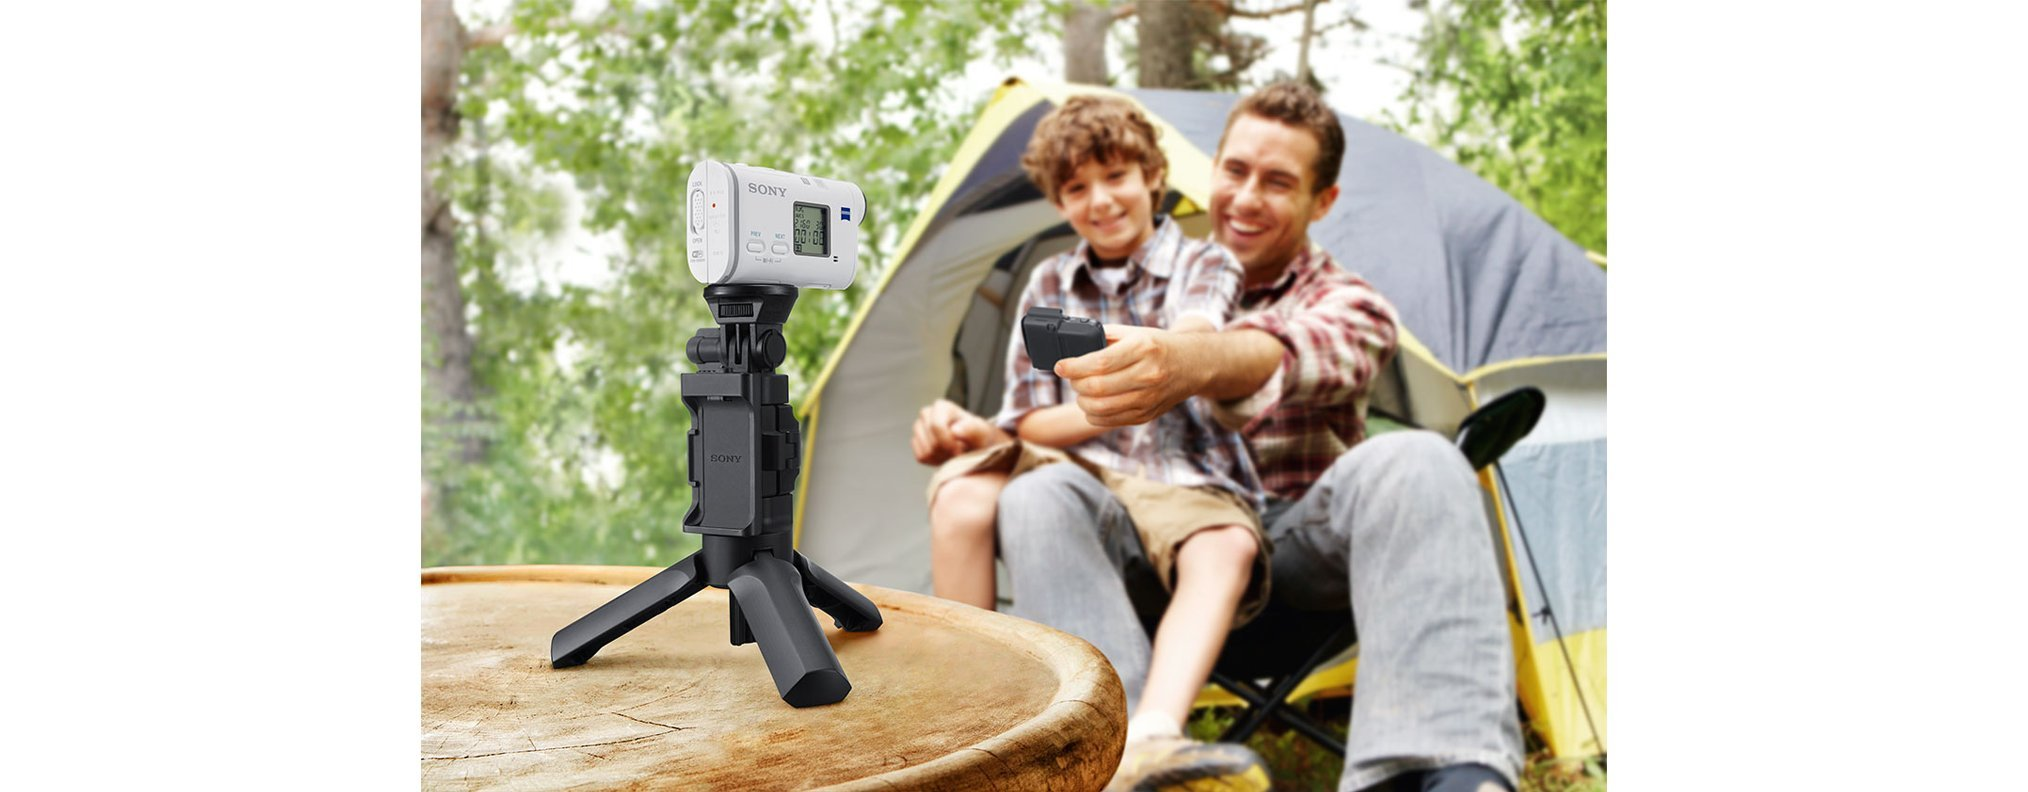 Sony VCT-STG1 Shooting Grip for Action Cam - Black by Sony